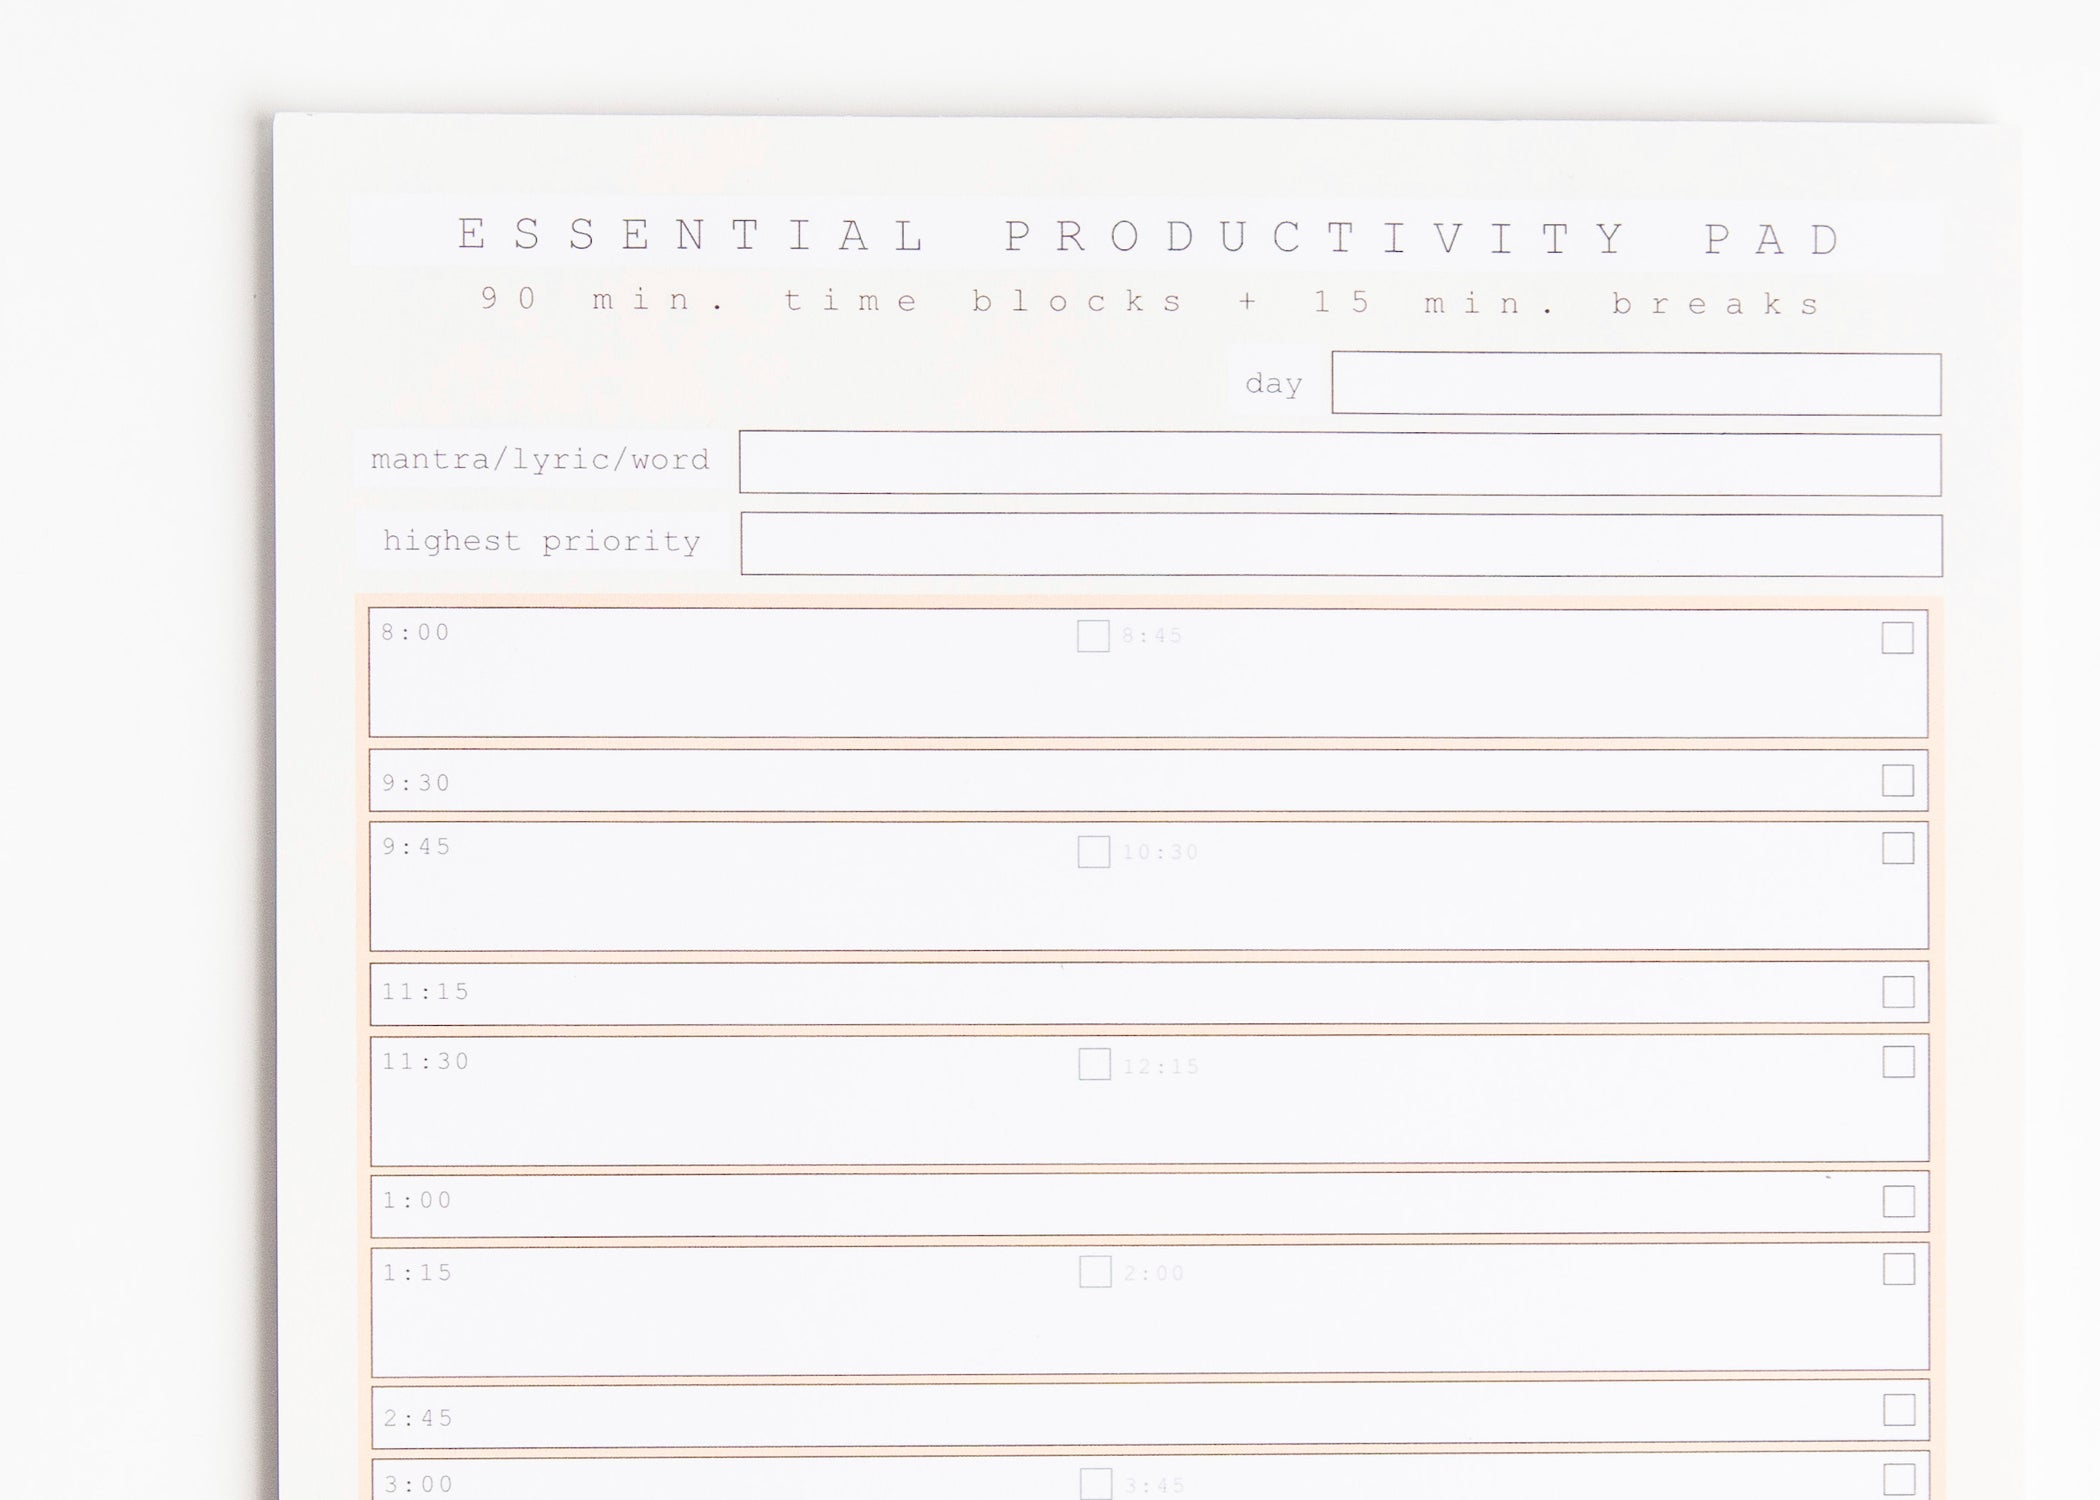 Essential Productivity Pad (Notepad)